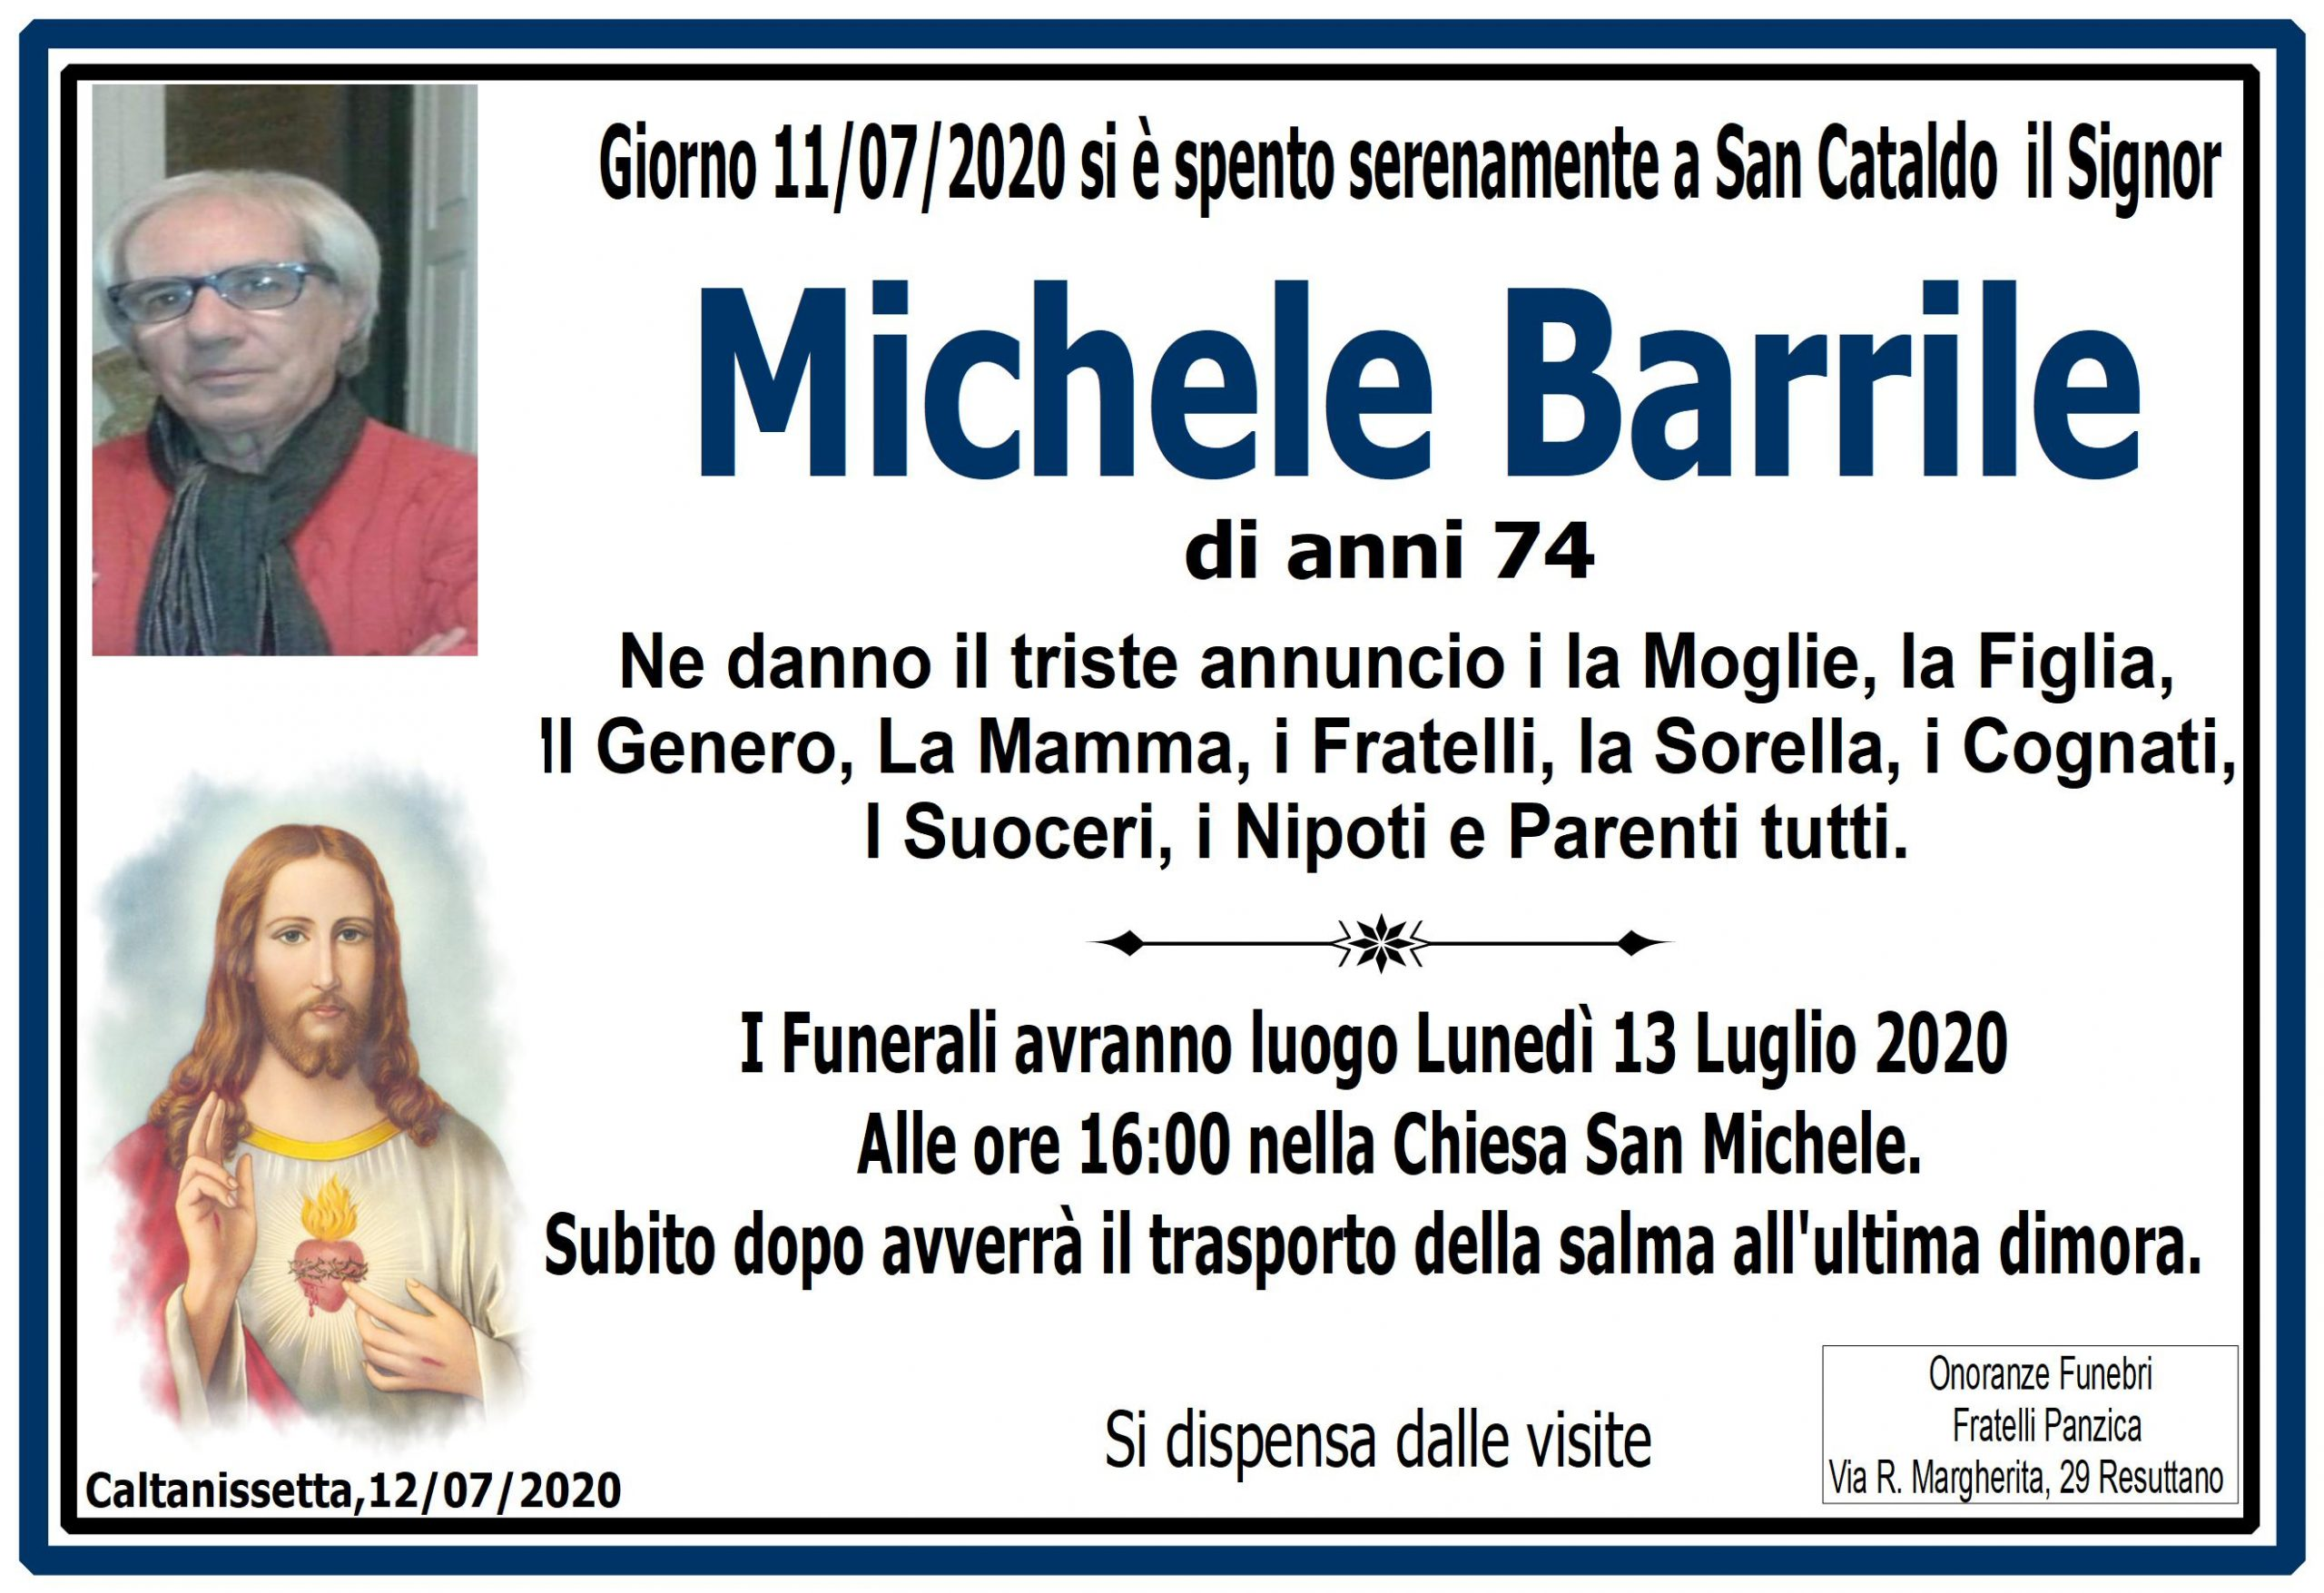 Michele Barrile